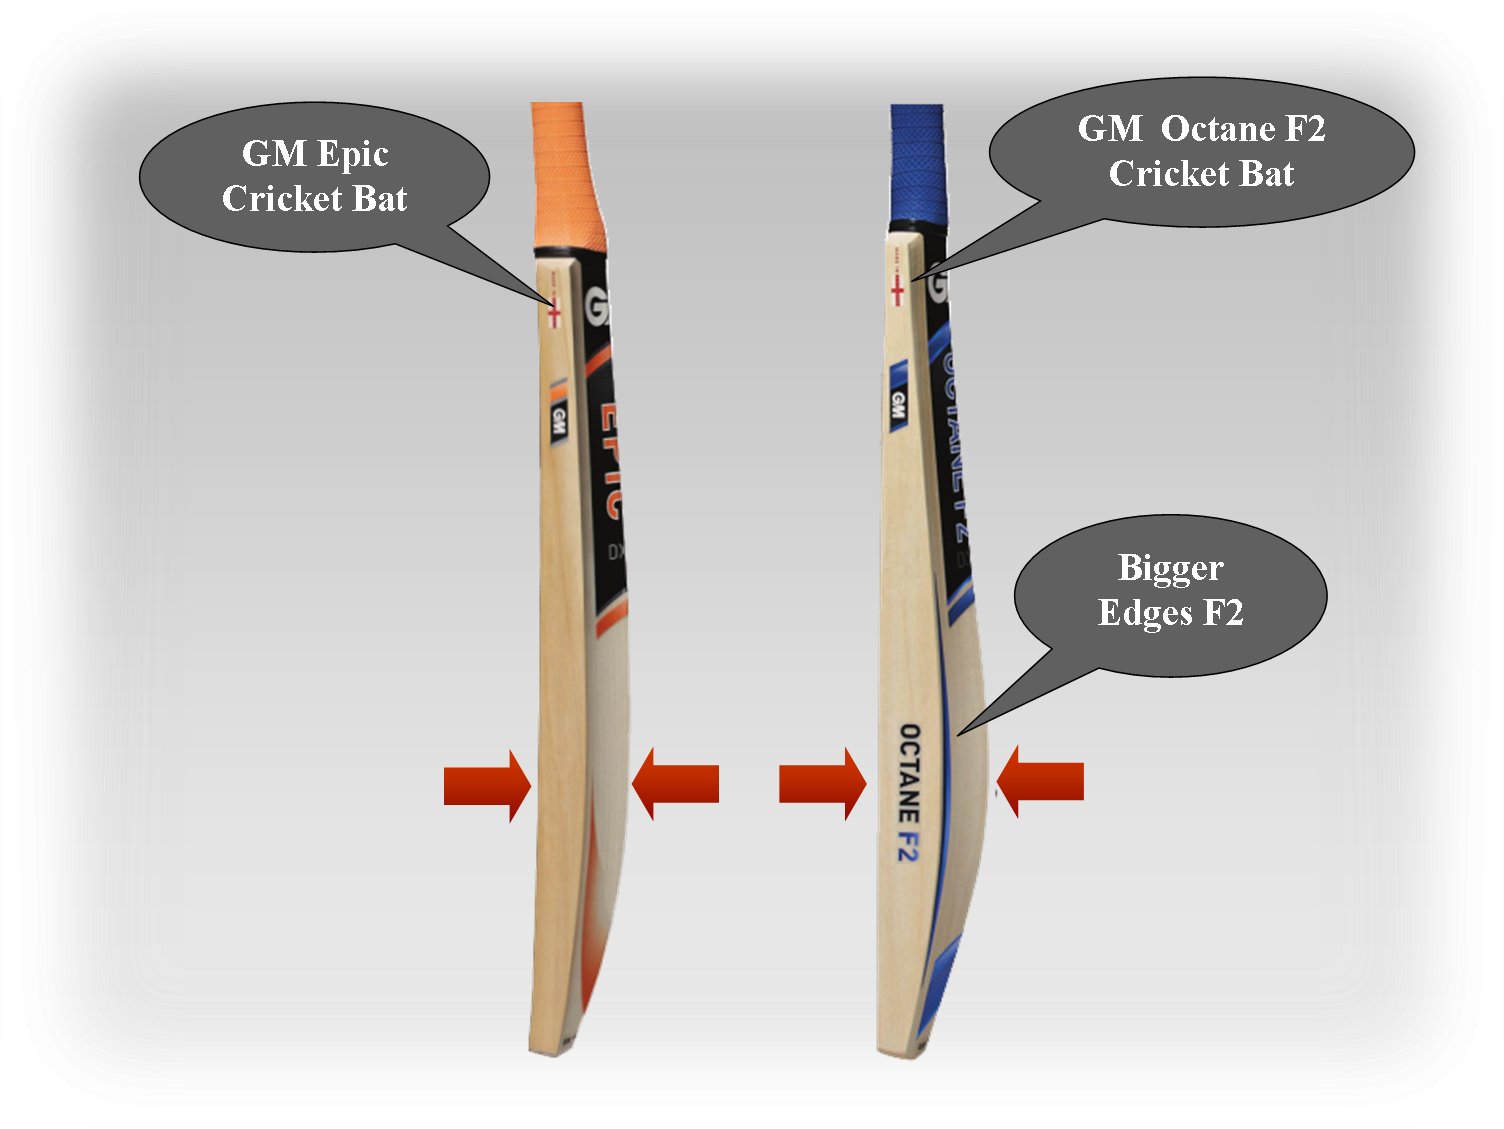 GM Cricket Bats Octane F2